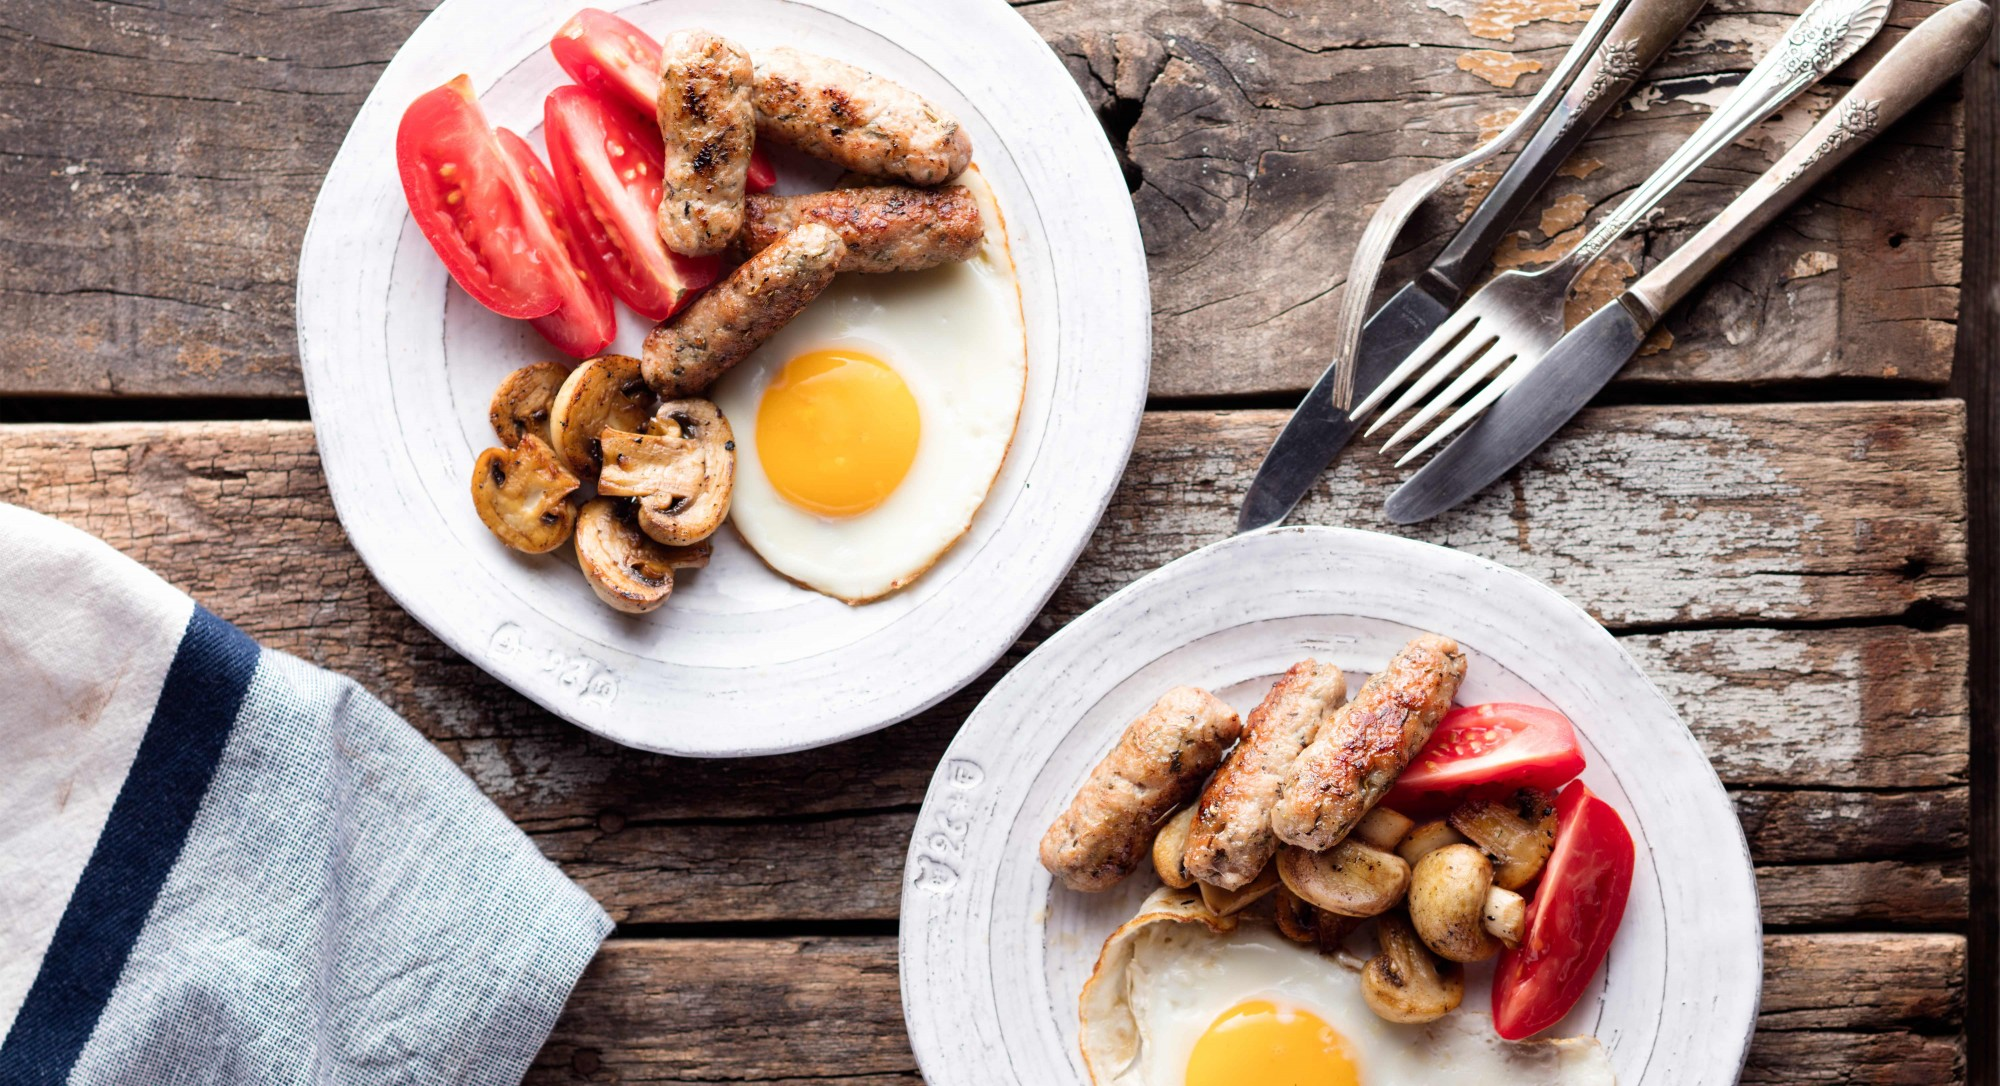 Paleo Breakfast Sausage Recipe